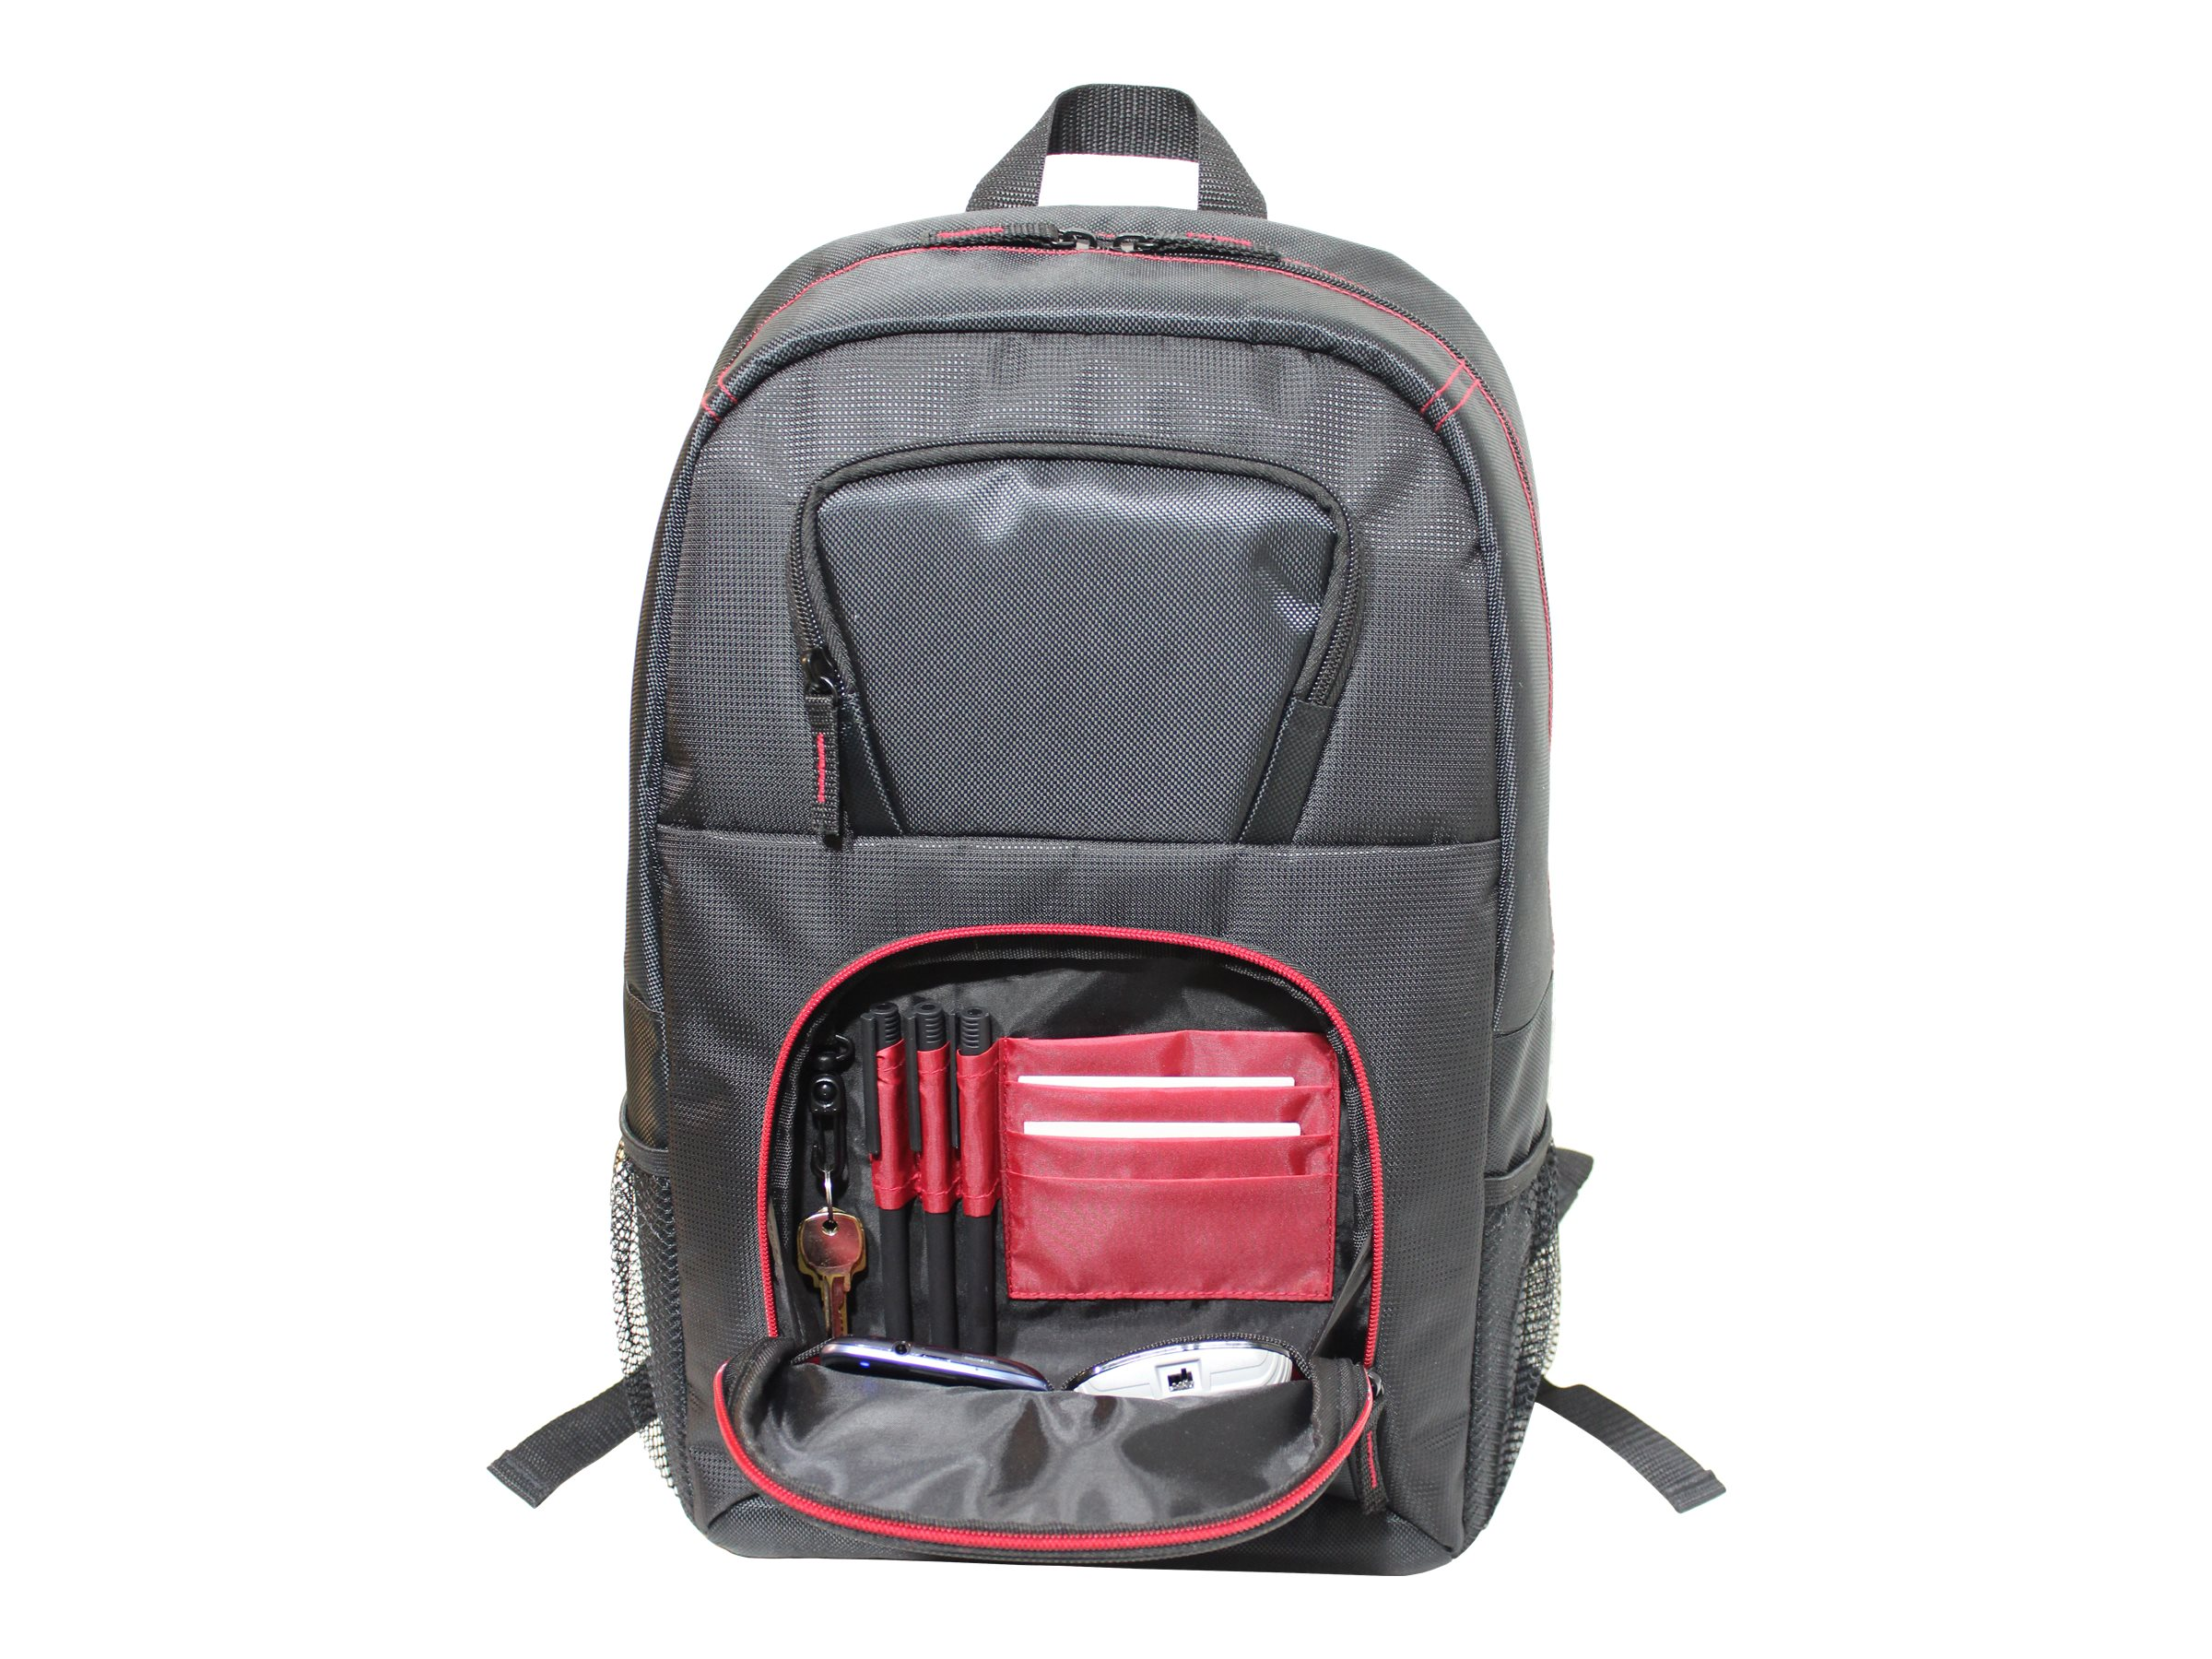 V7 Vantage 2 Backpack for 16.1 Laptop, Black w  Red Trim